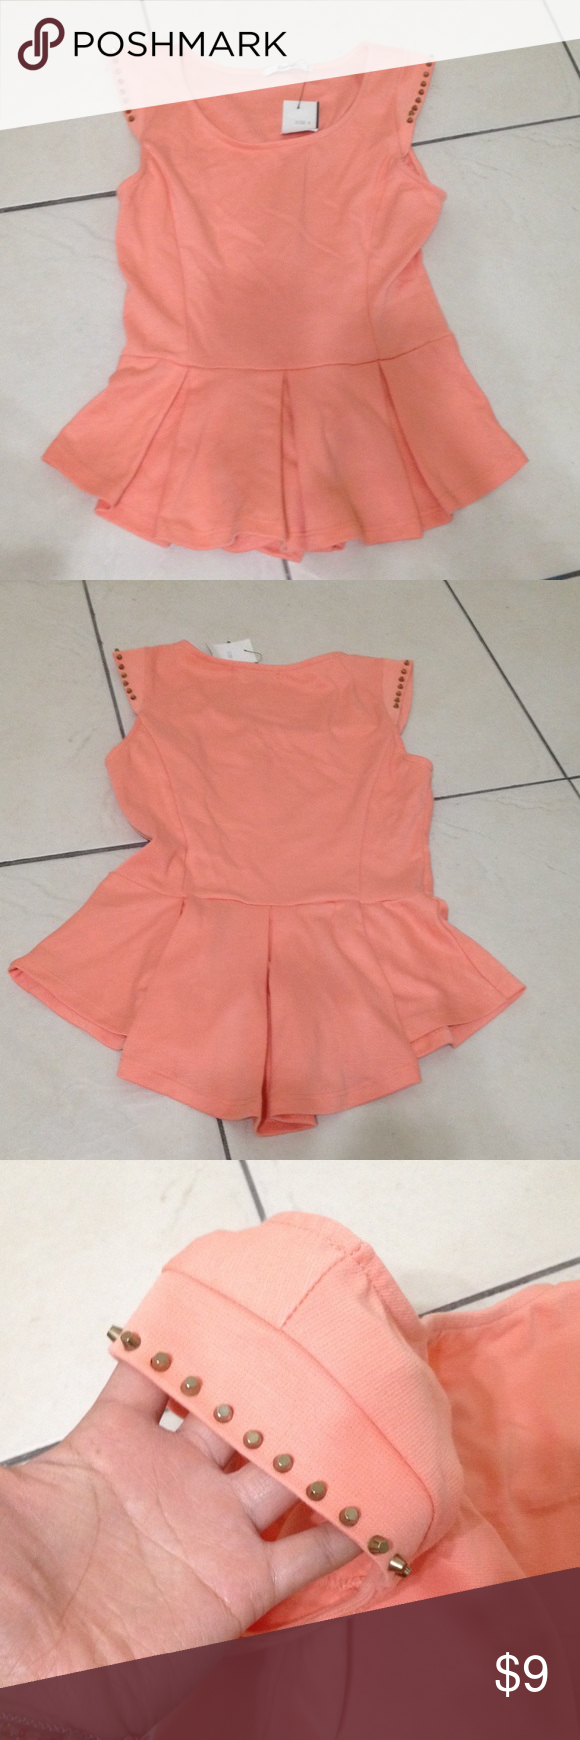 NWT Coral Peplum Top with Studded Sleeves Cap sleeves with gold studs along the edge. The bottom flares out in a semi-pleated peplum style. Stretchy polyester material. Papaya Tops Blouses